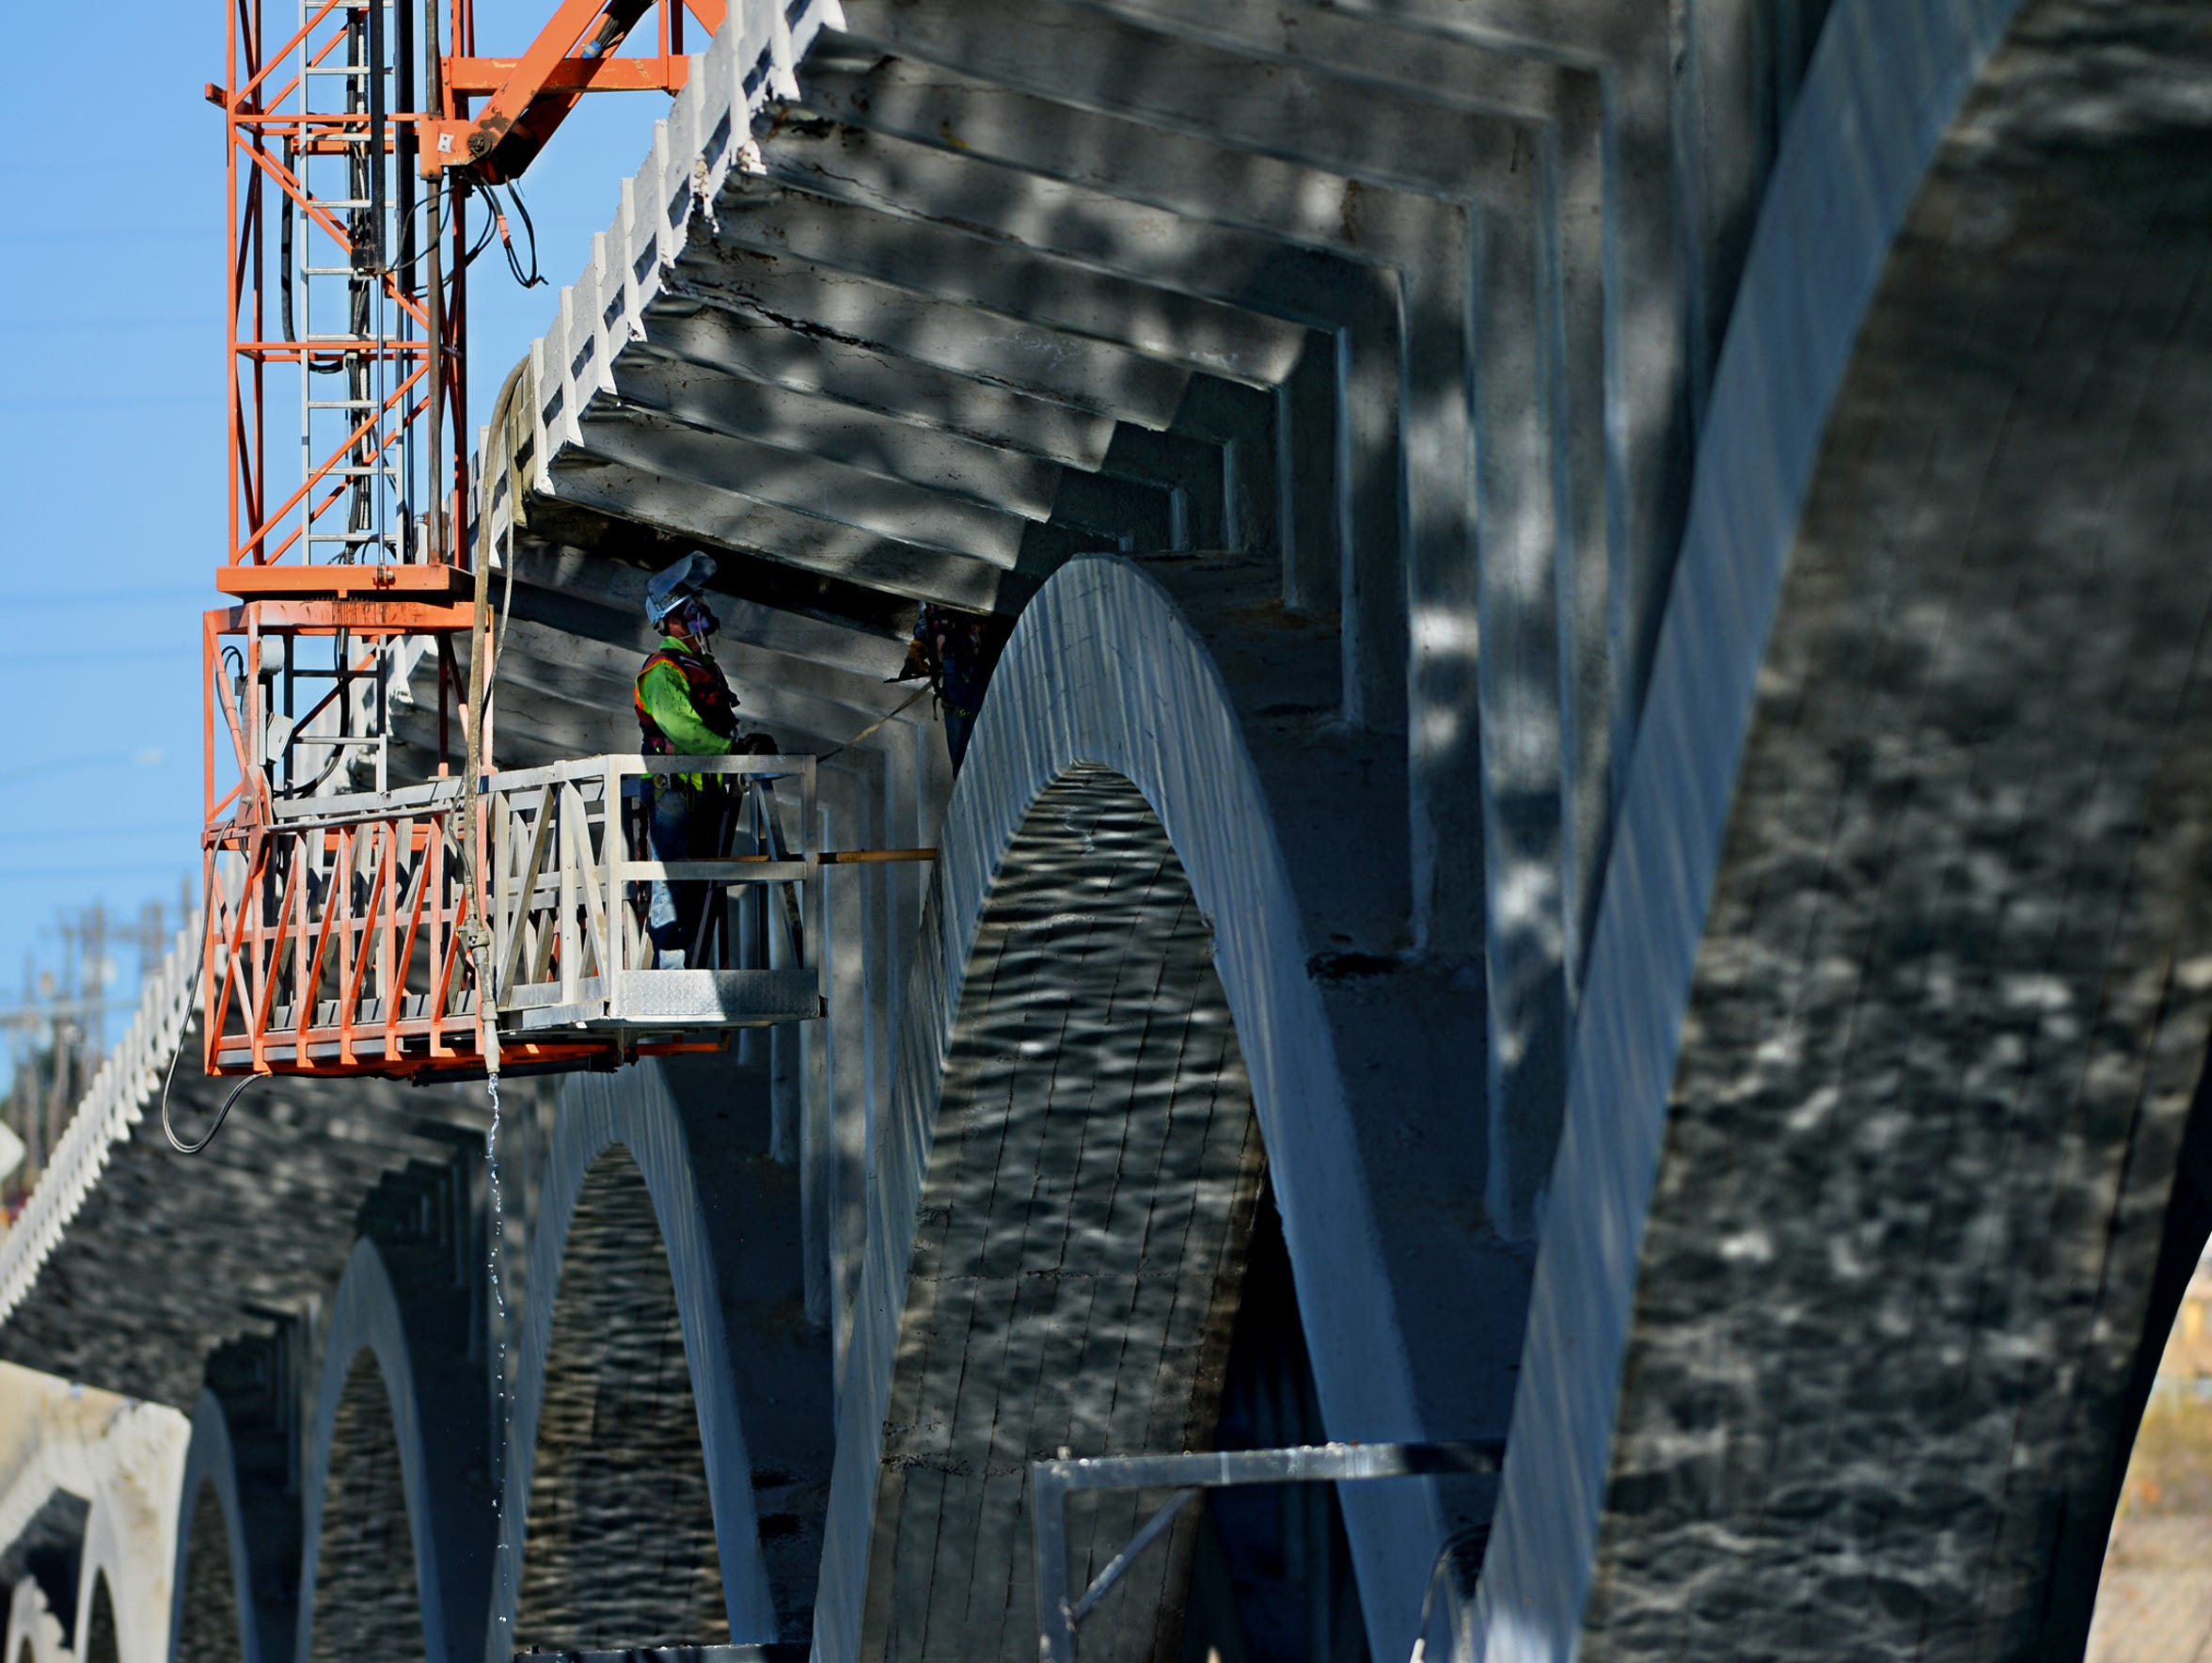 A crew from Tamietti Construction repairs joints in the 10th Street Bridge deck by adding new concrete in 2015. The joints allow the bridge to expand and contract as temperatures fluctuate.